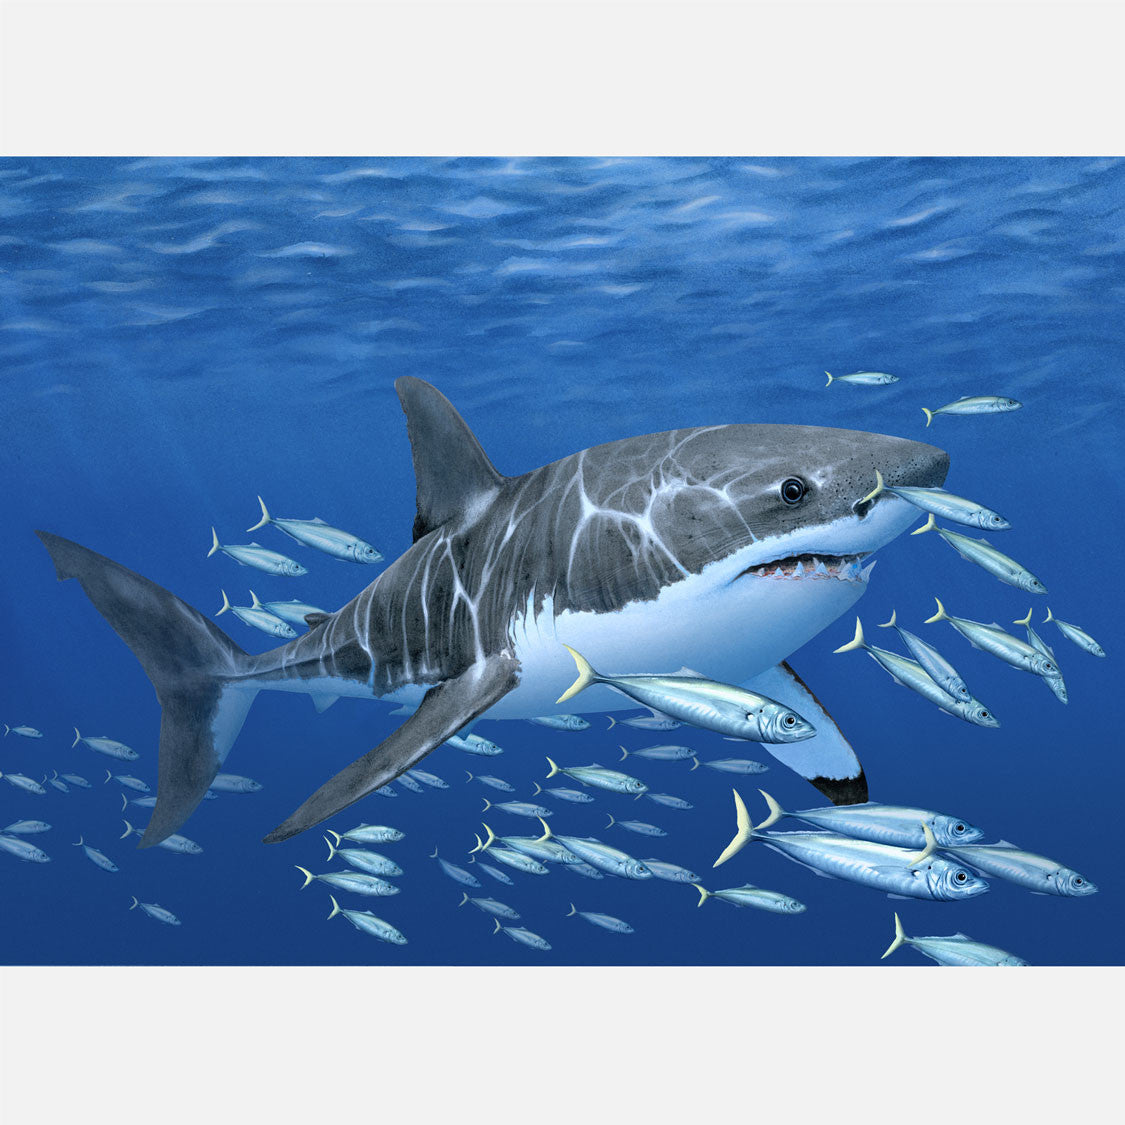 This beautiful, highly detailed illustration is of a white shark, Carcharodon carcharias, amongst a school of fish.